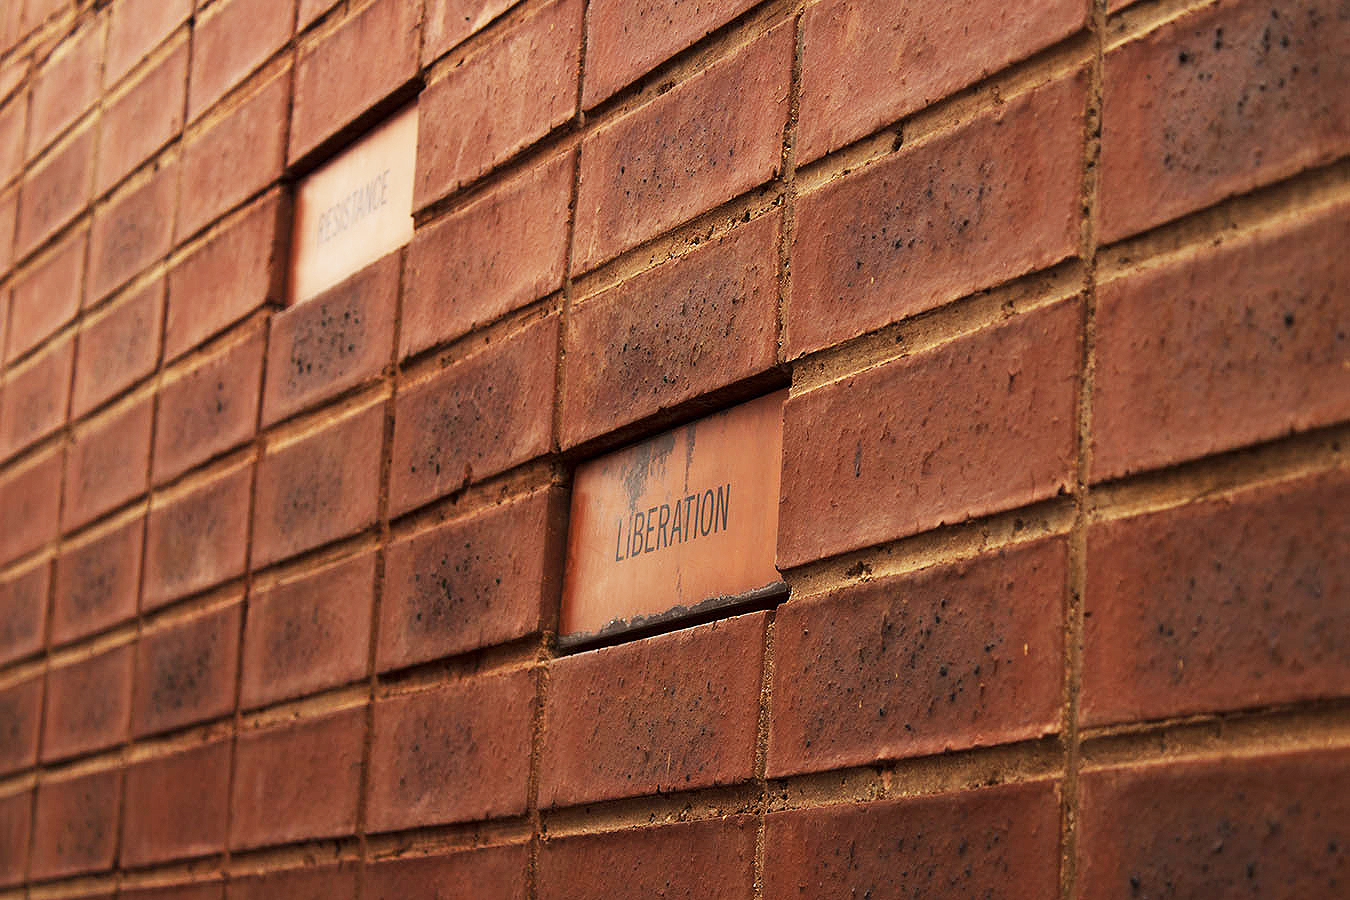 Words inscribed on the wall of Nelson Mandela's house in Johannesburg